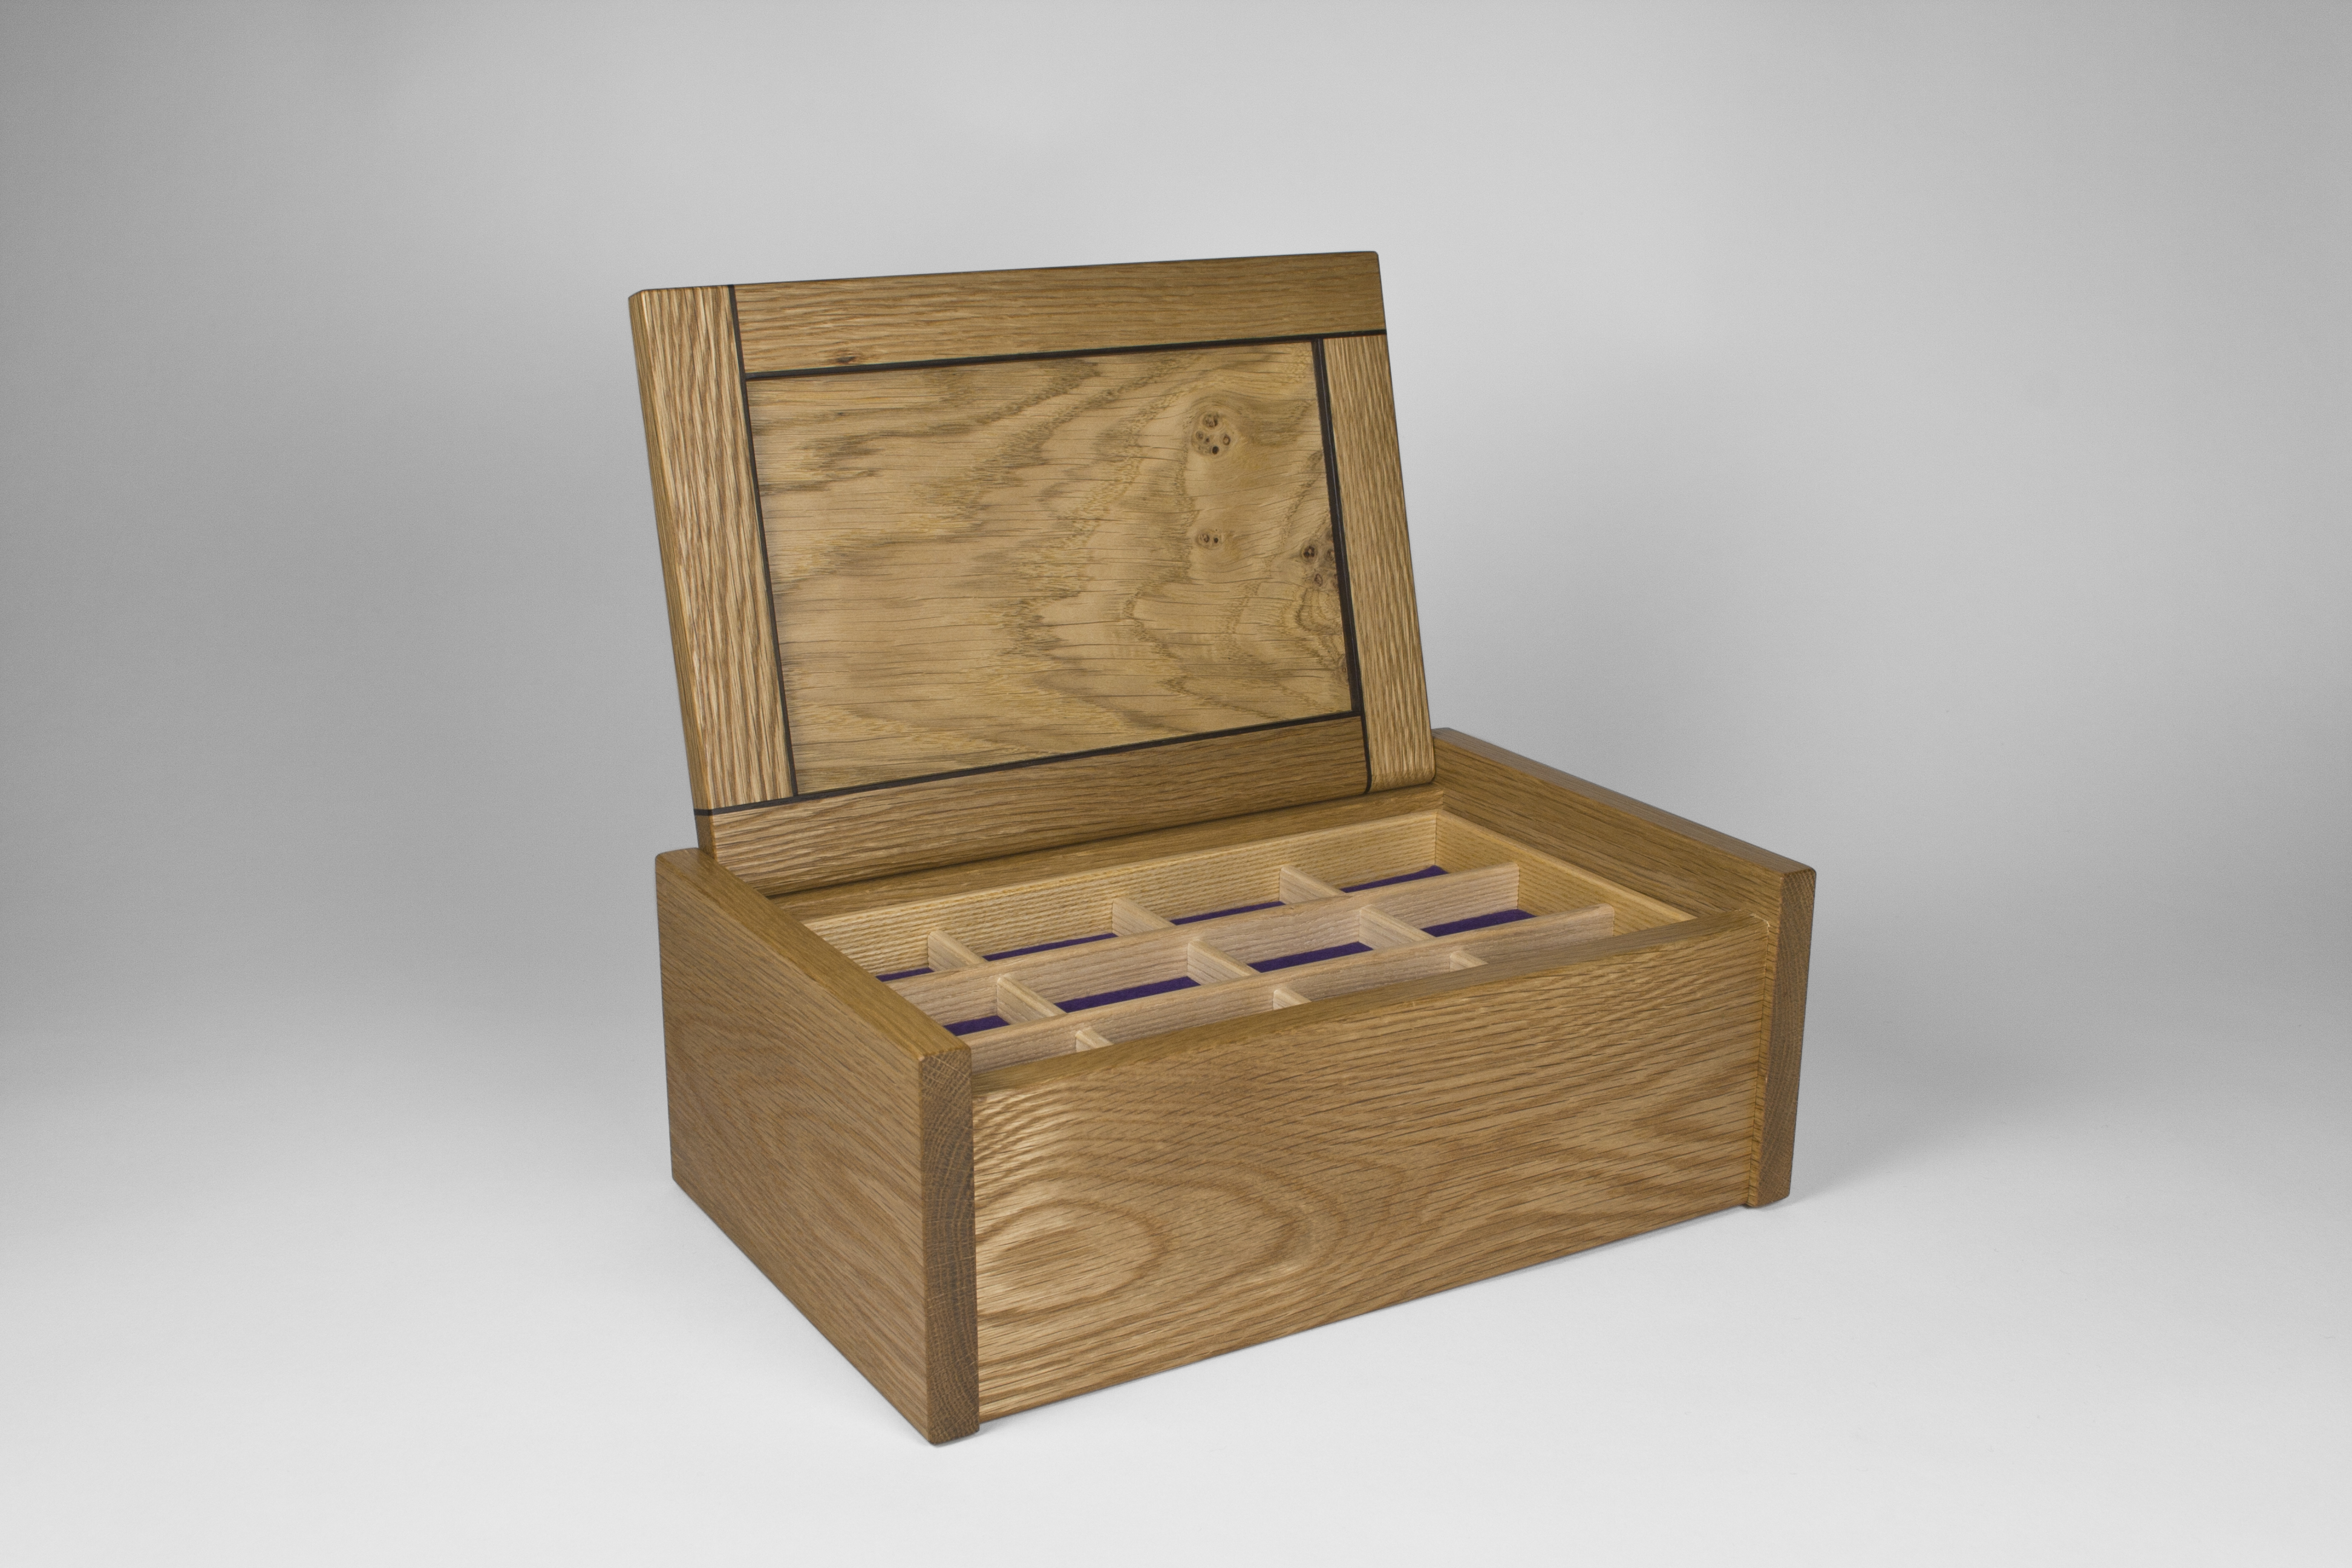 Jewellery box with lid open